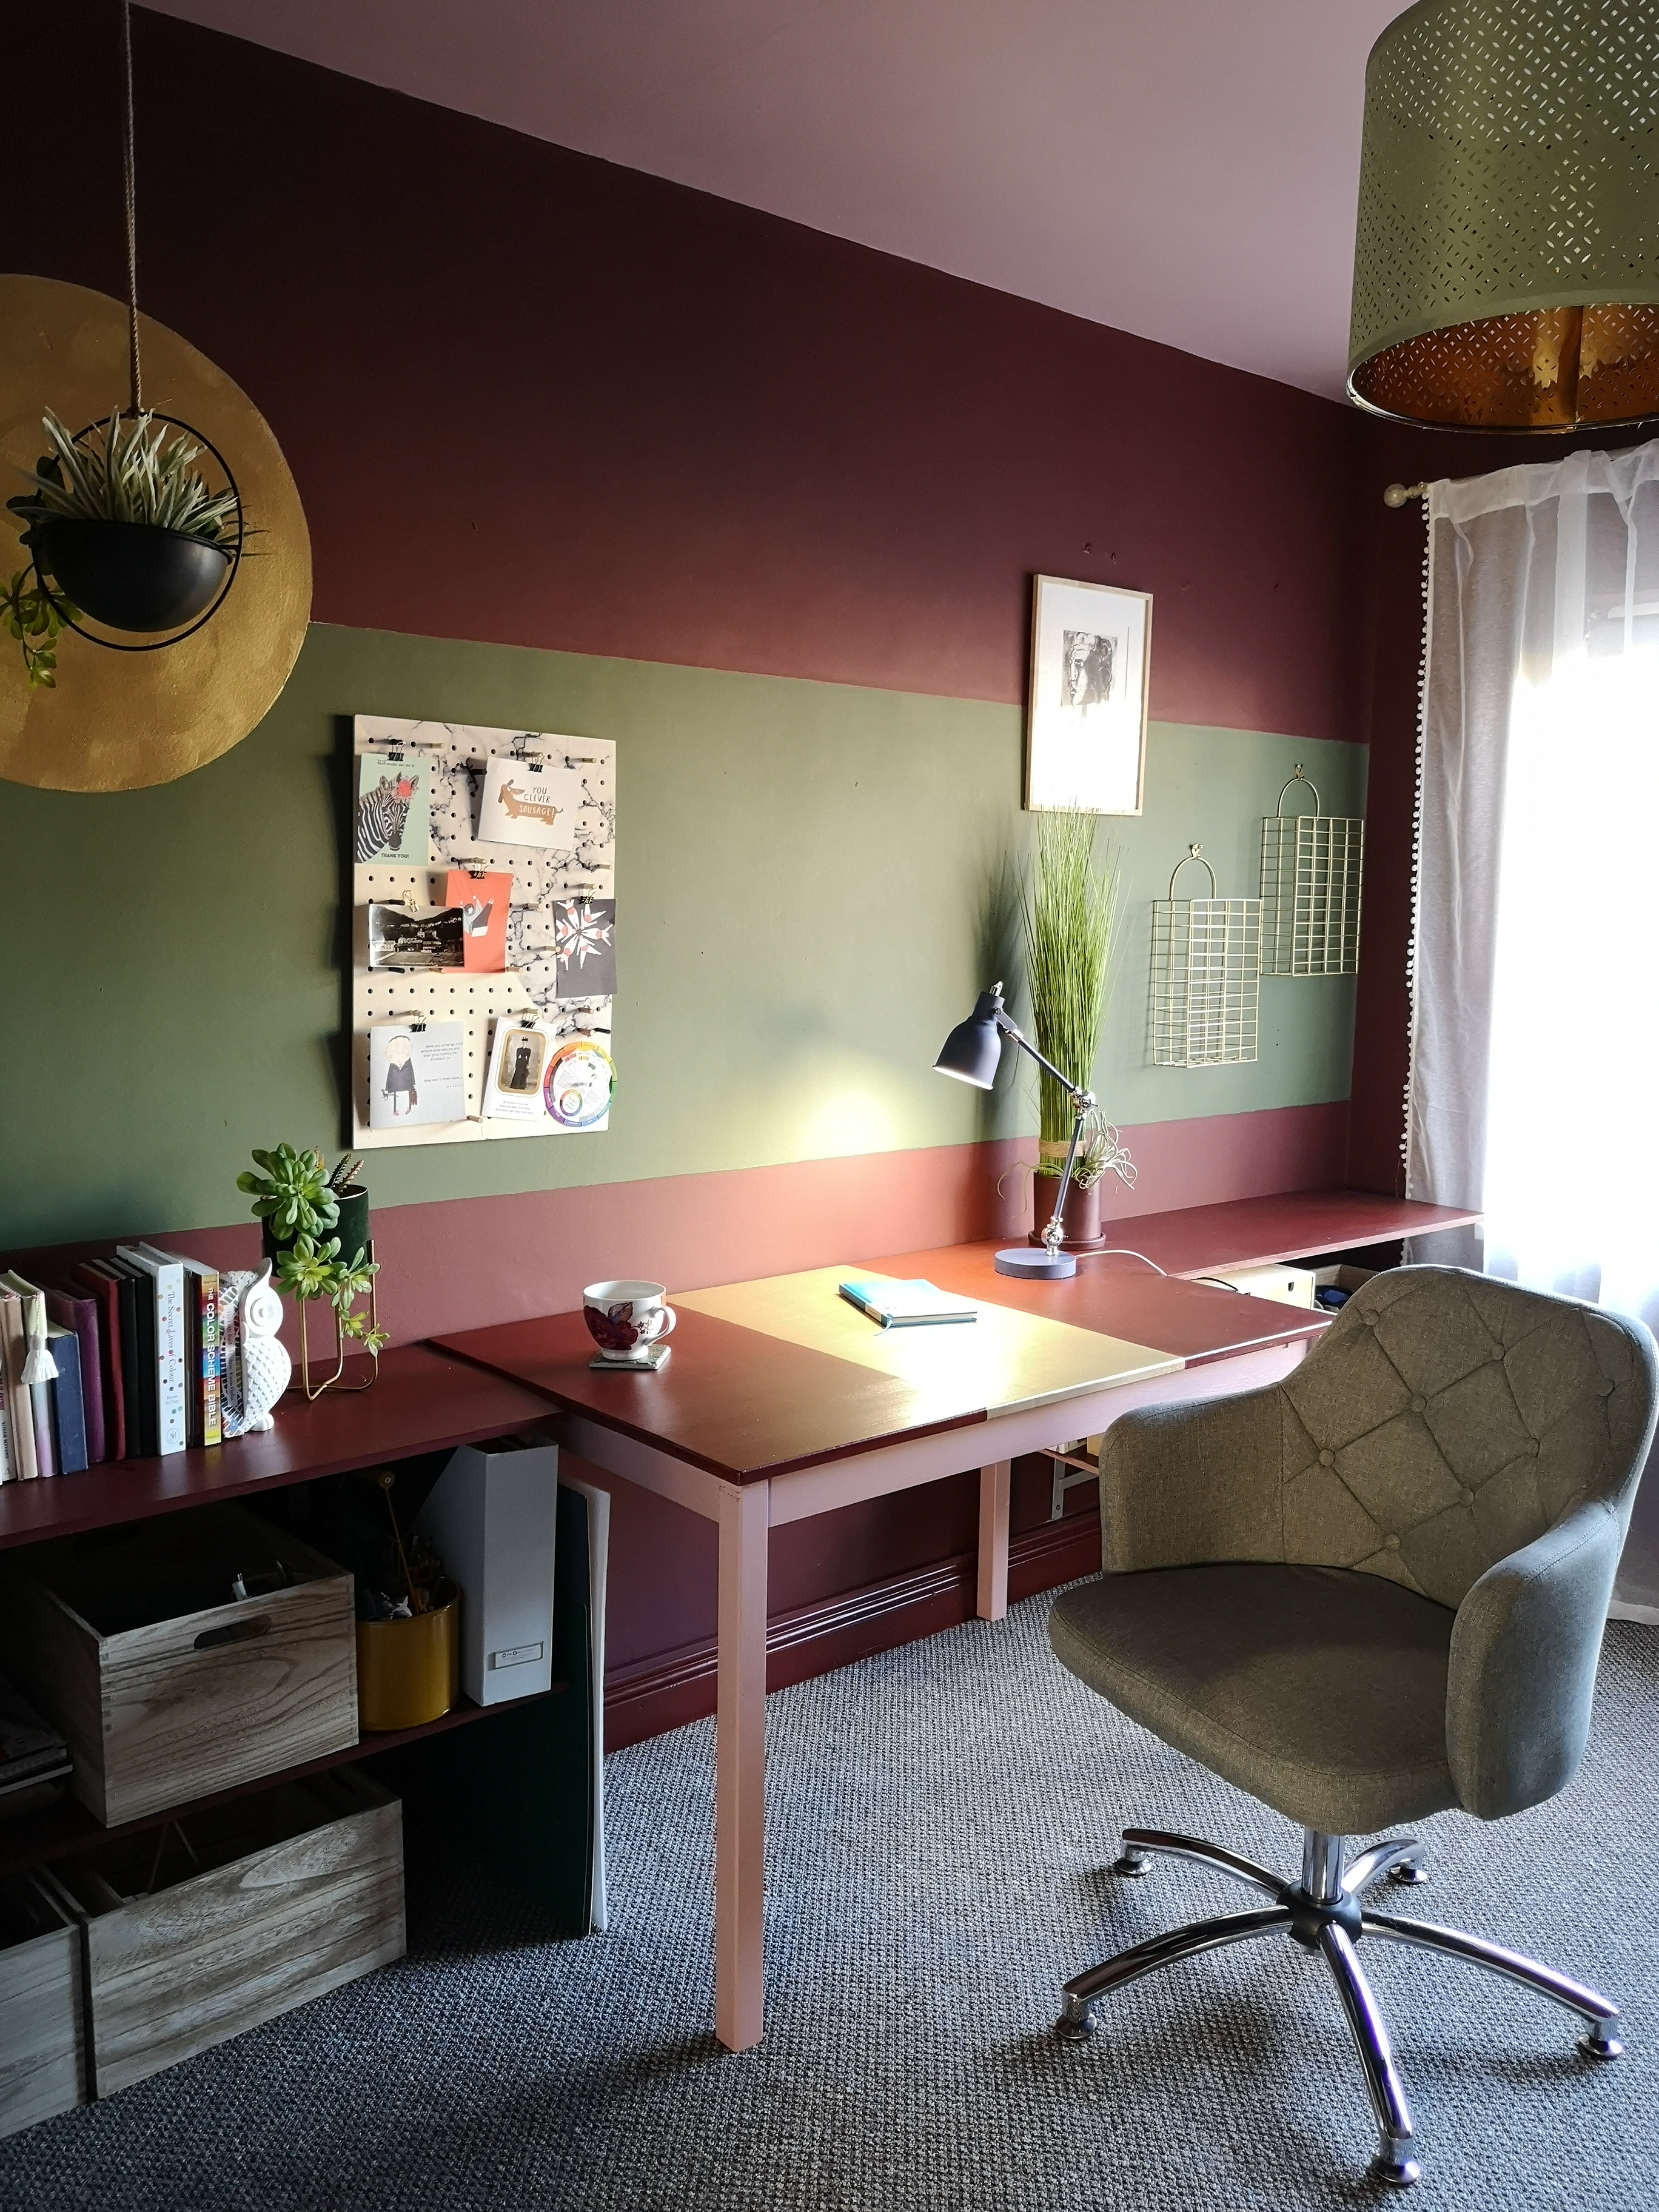 The Study Guide: getting a room makeover for under €500